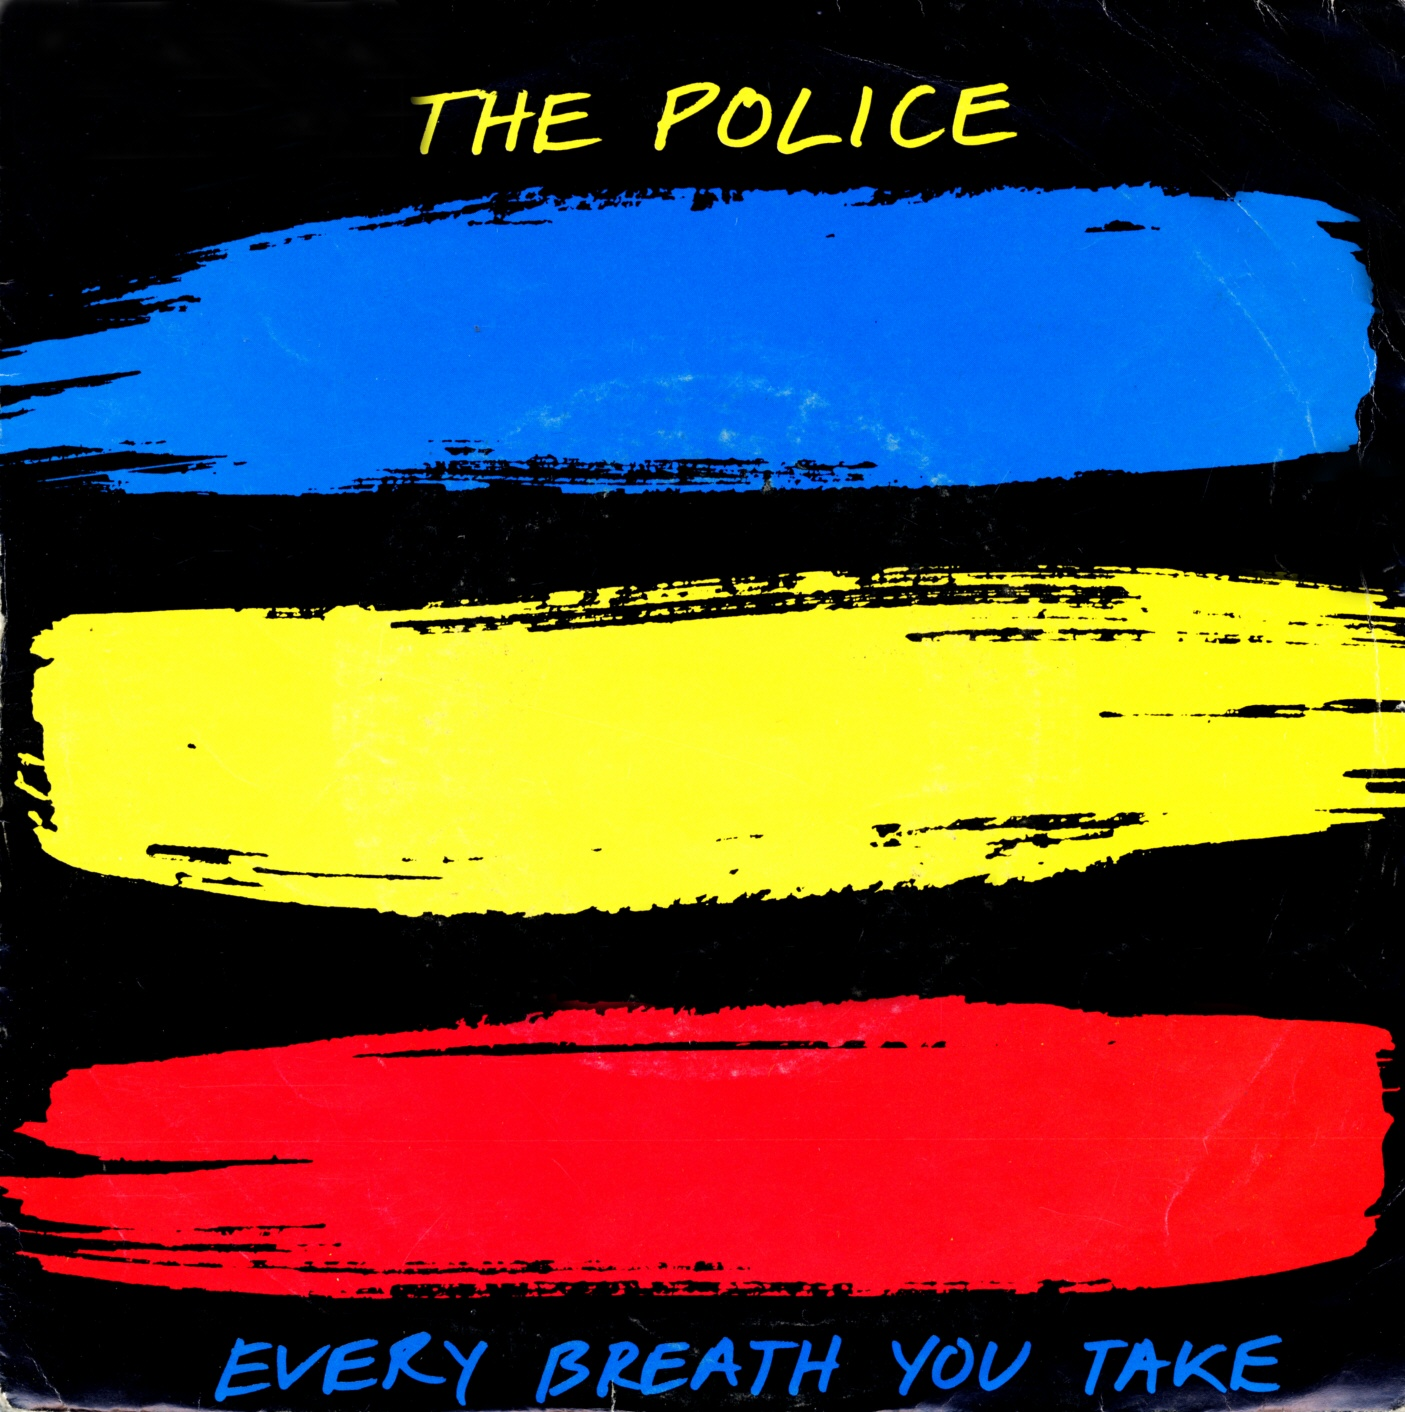 Cover: Every breath you take, The Police